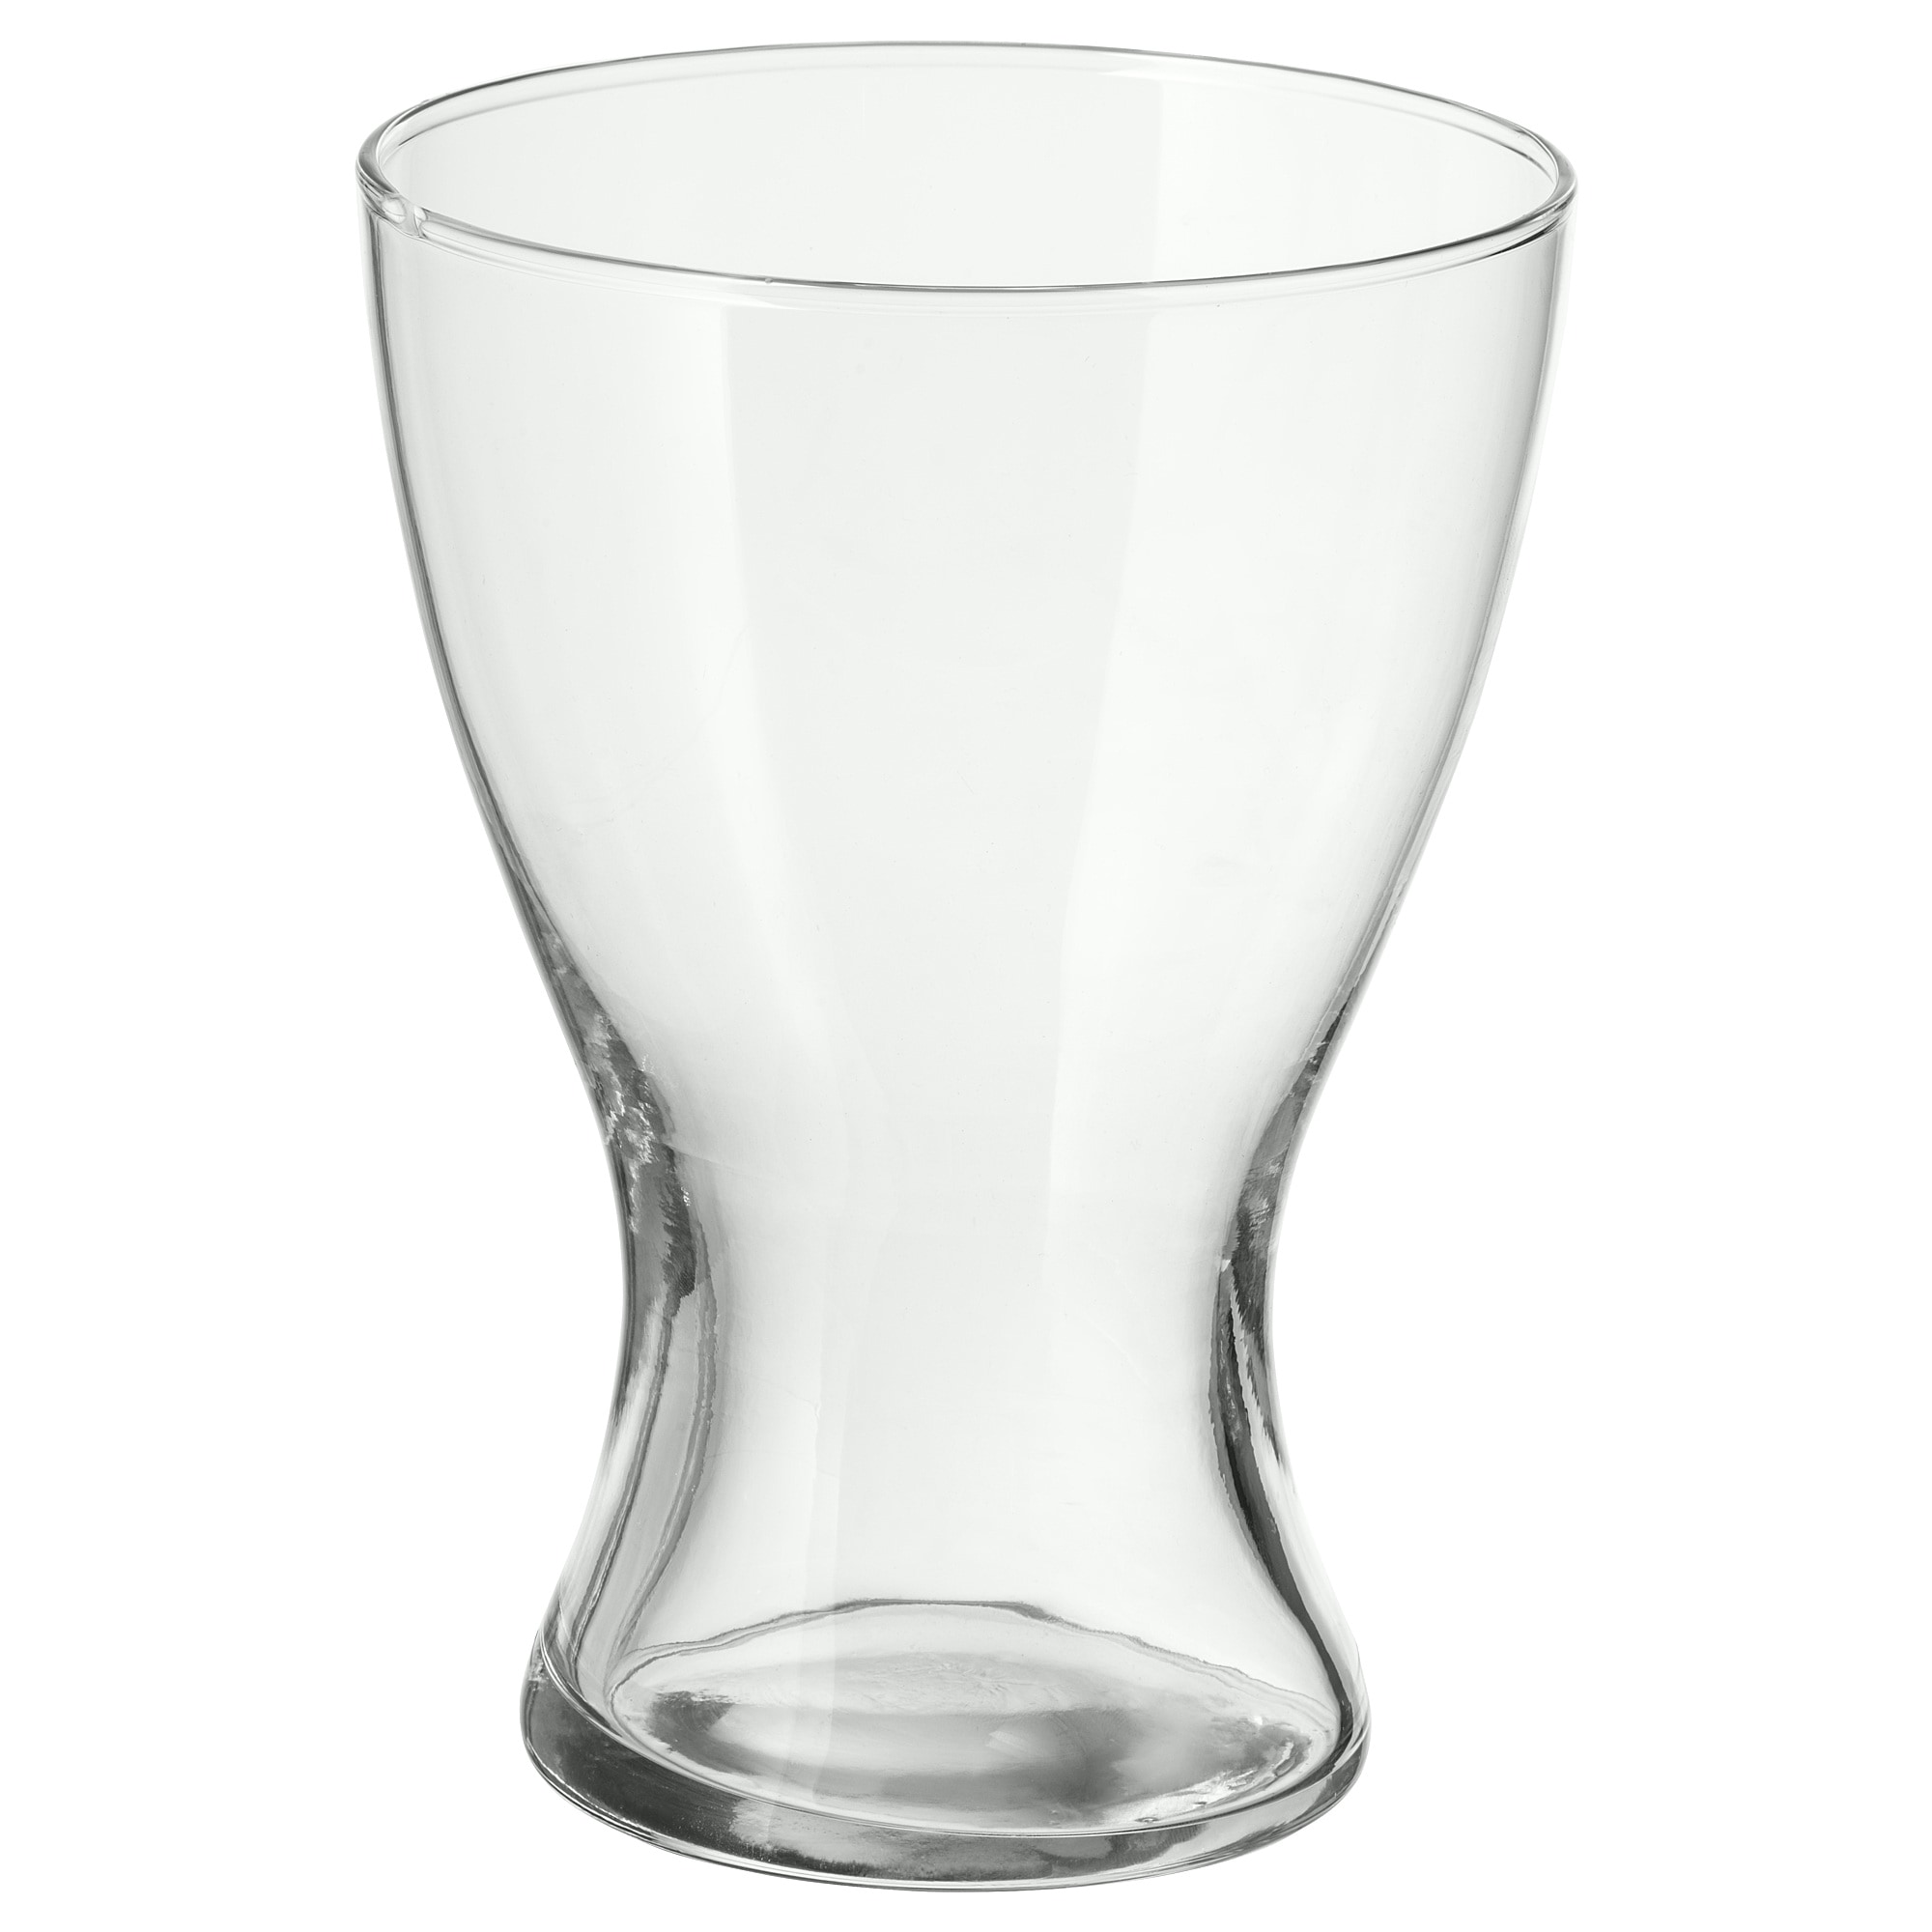 225 & Glass \u0026 Flower Vases and Bowls - IKEA